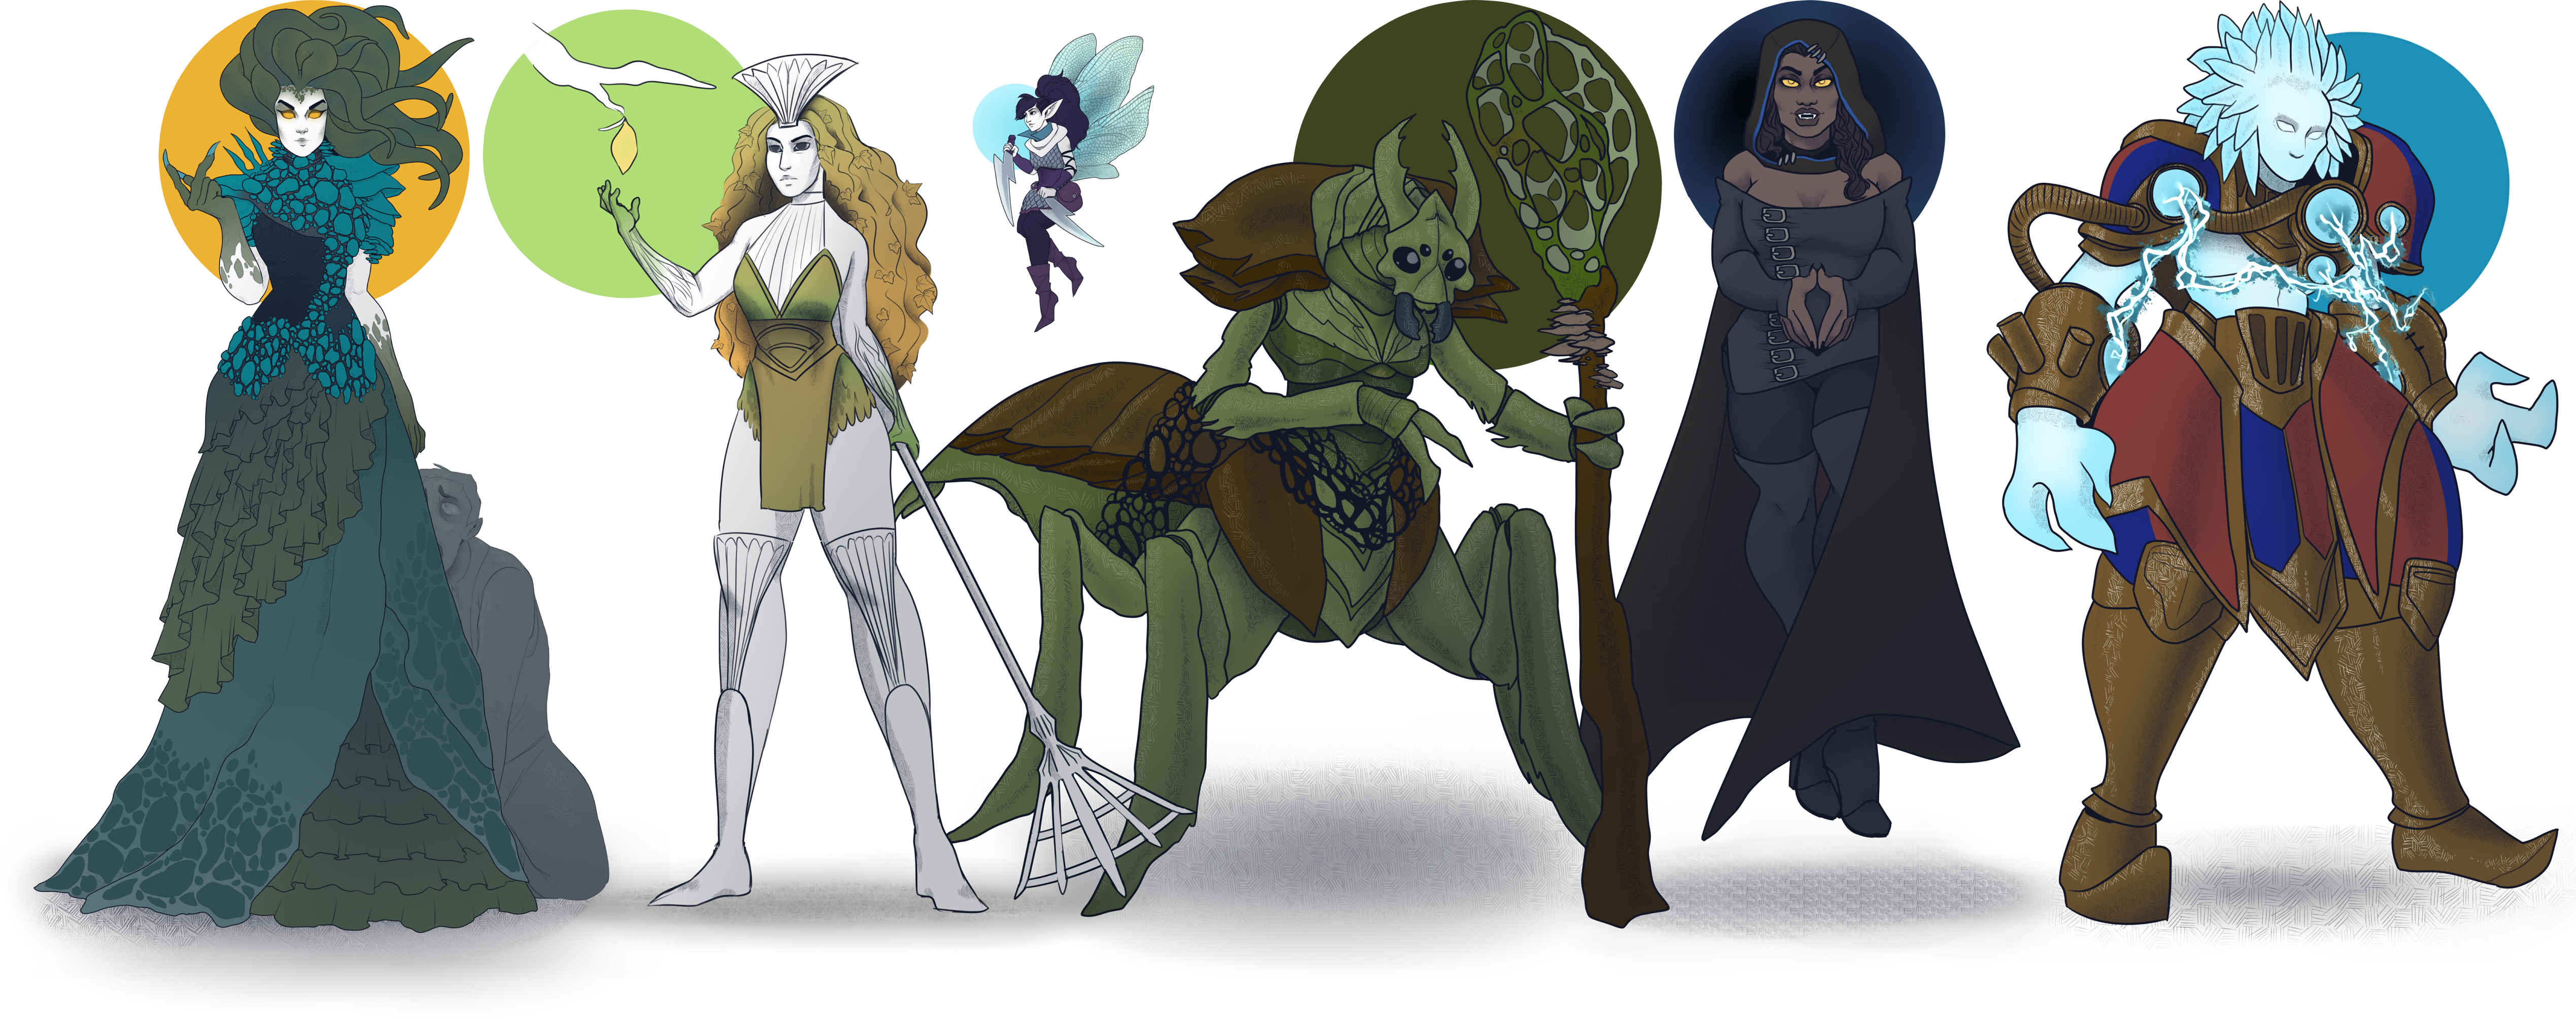 A lineup of characters. A gorgon staring at the viewer with a petrified figure beside her, a dryad, holding up her hand at a growing branch, a kraul (a large insect) holding a staff with fungi growing on it, a small faerie holding two daggers, a vampire in a black cloak hovering while she looks at the viewer, and an elemental, wearing red and blue robes, crackling with lightning